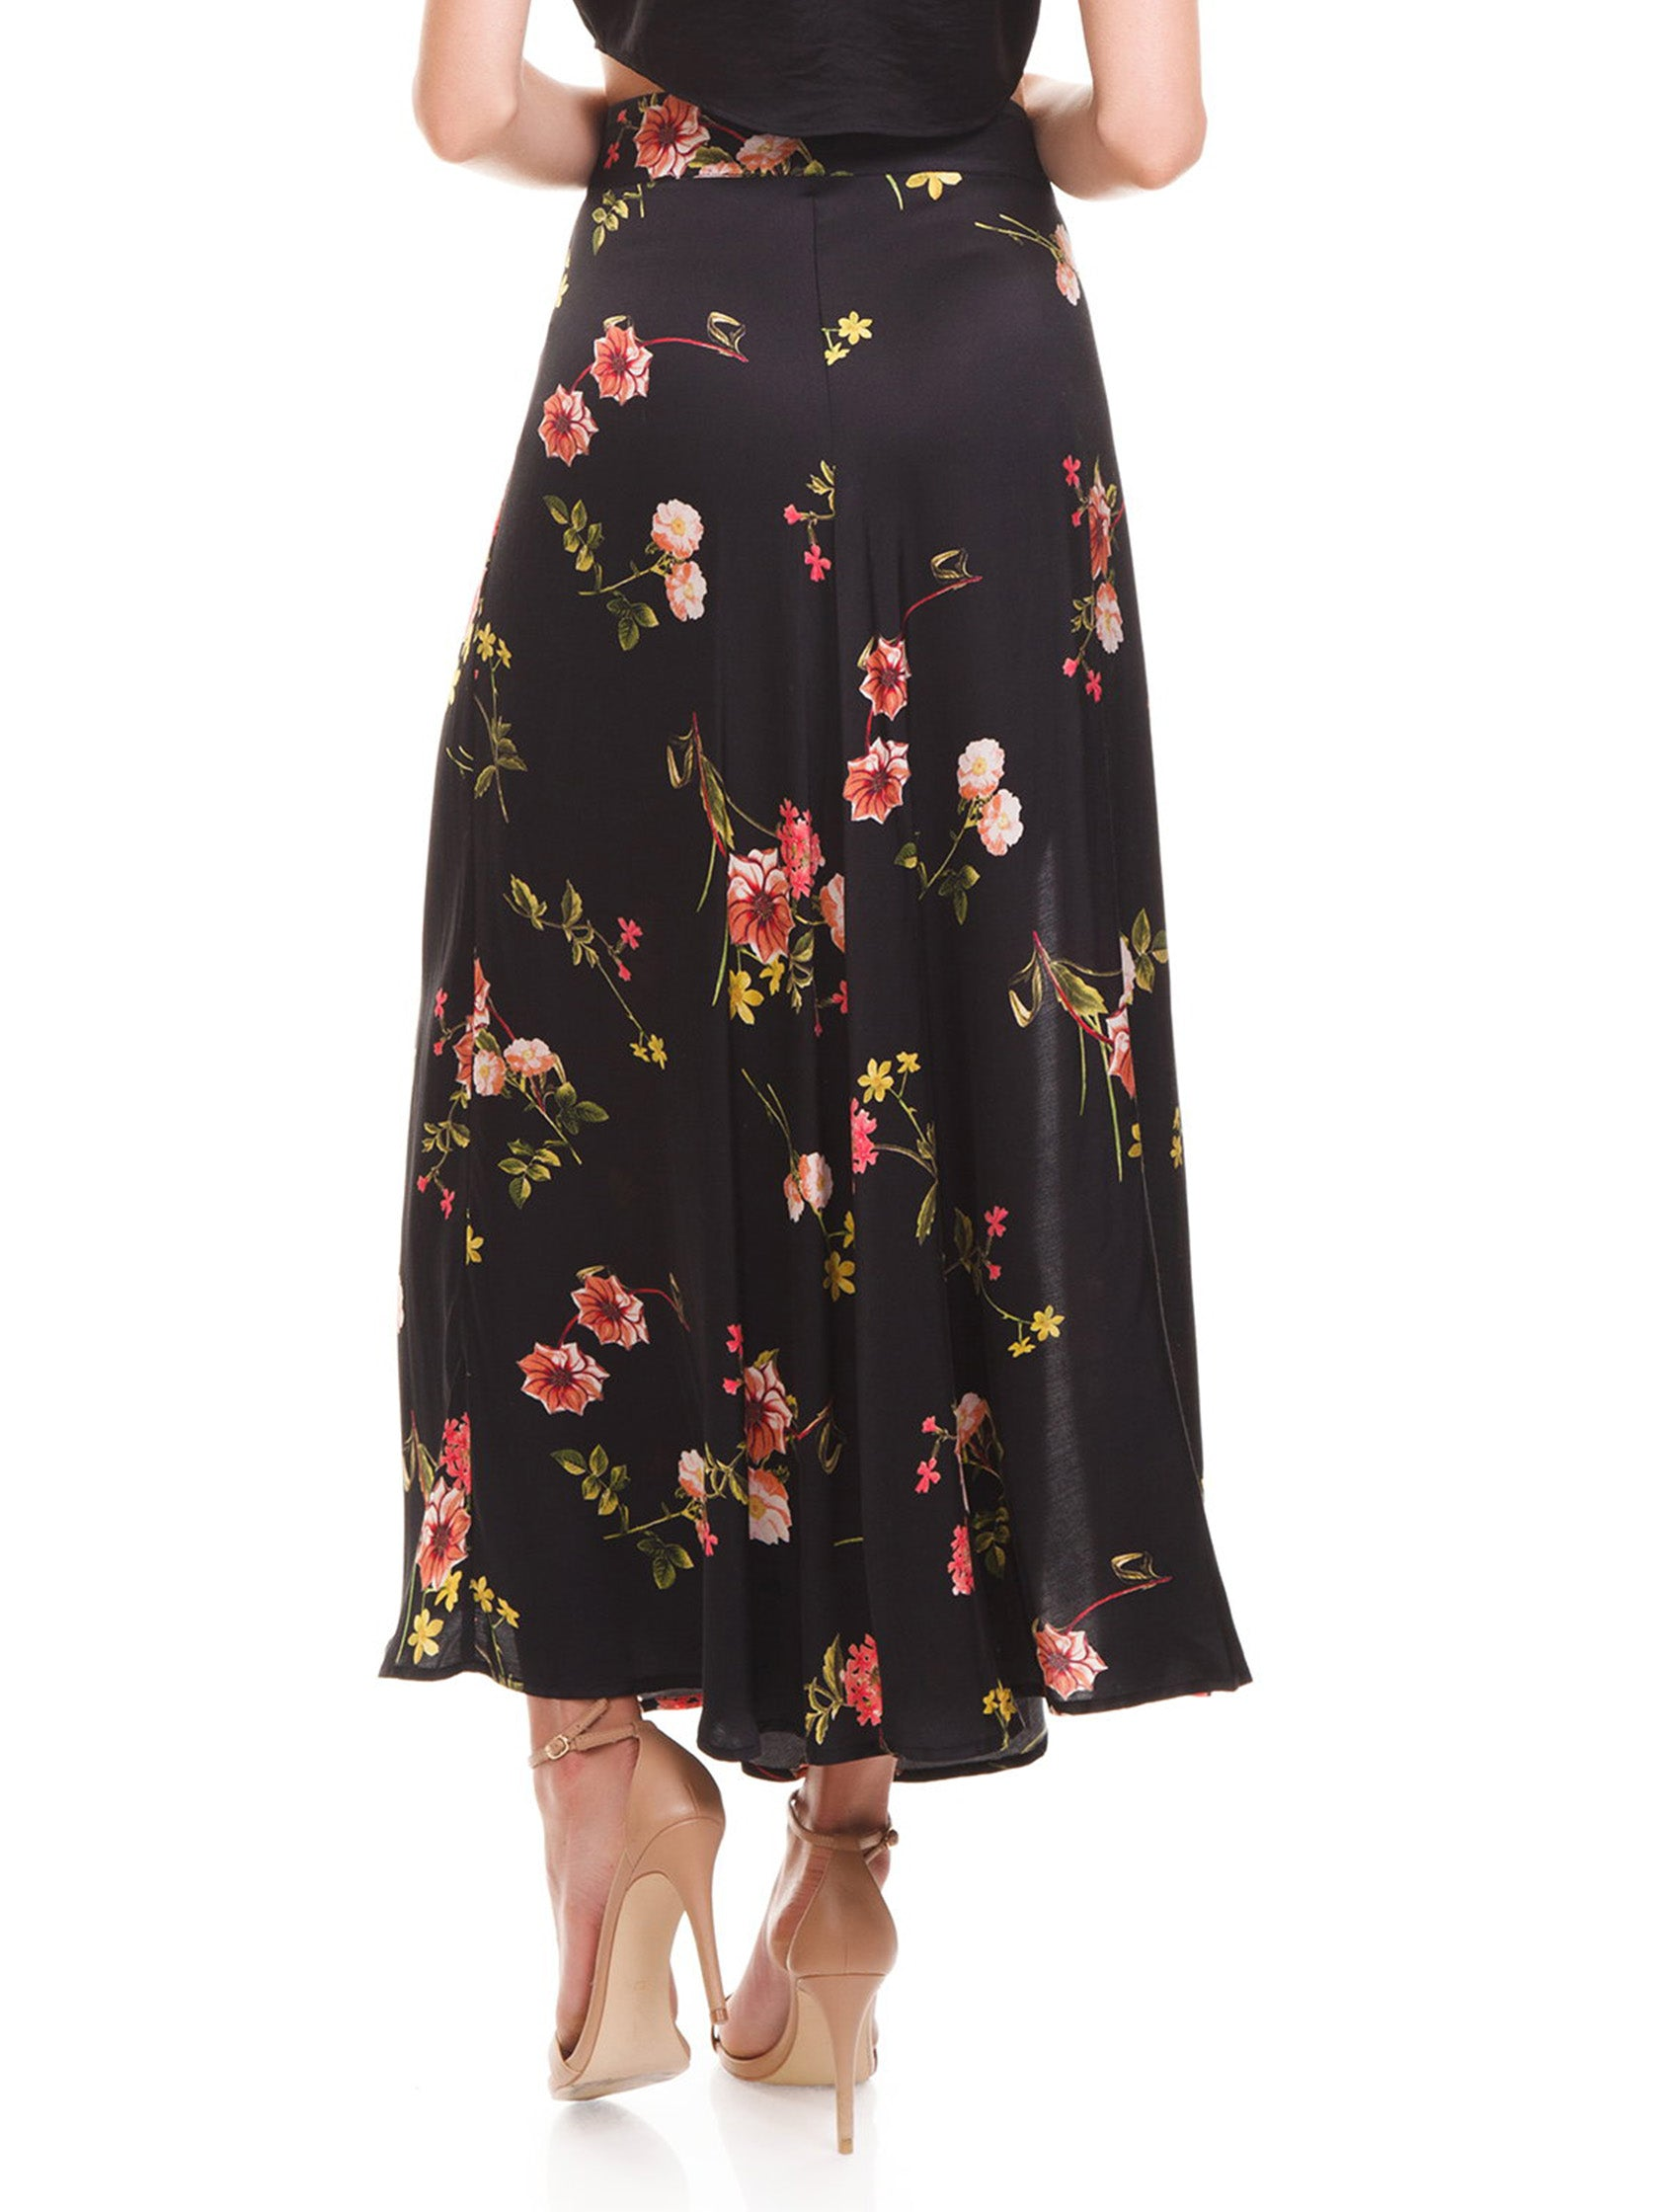 Women outfit in a skirt rental from Capulet called Madie Midi Skirt